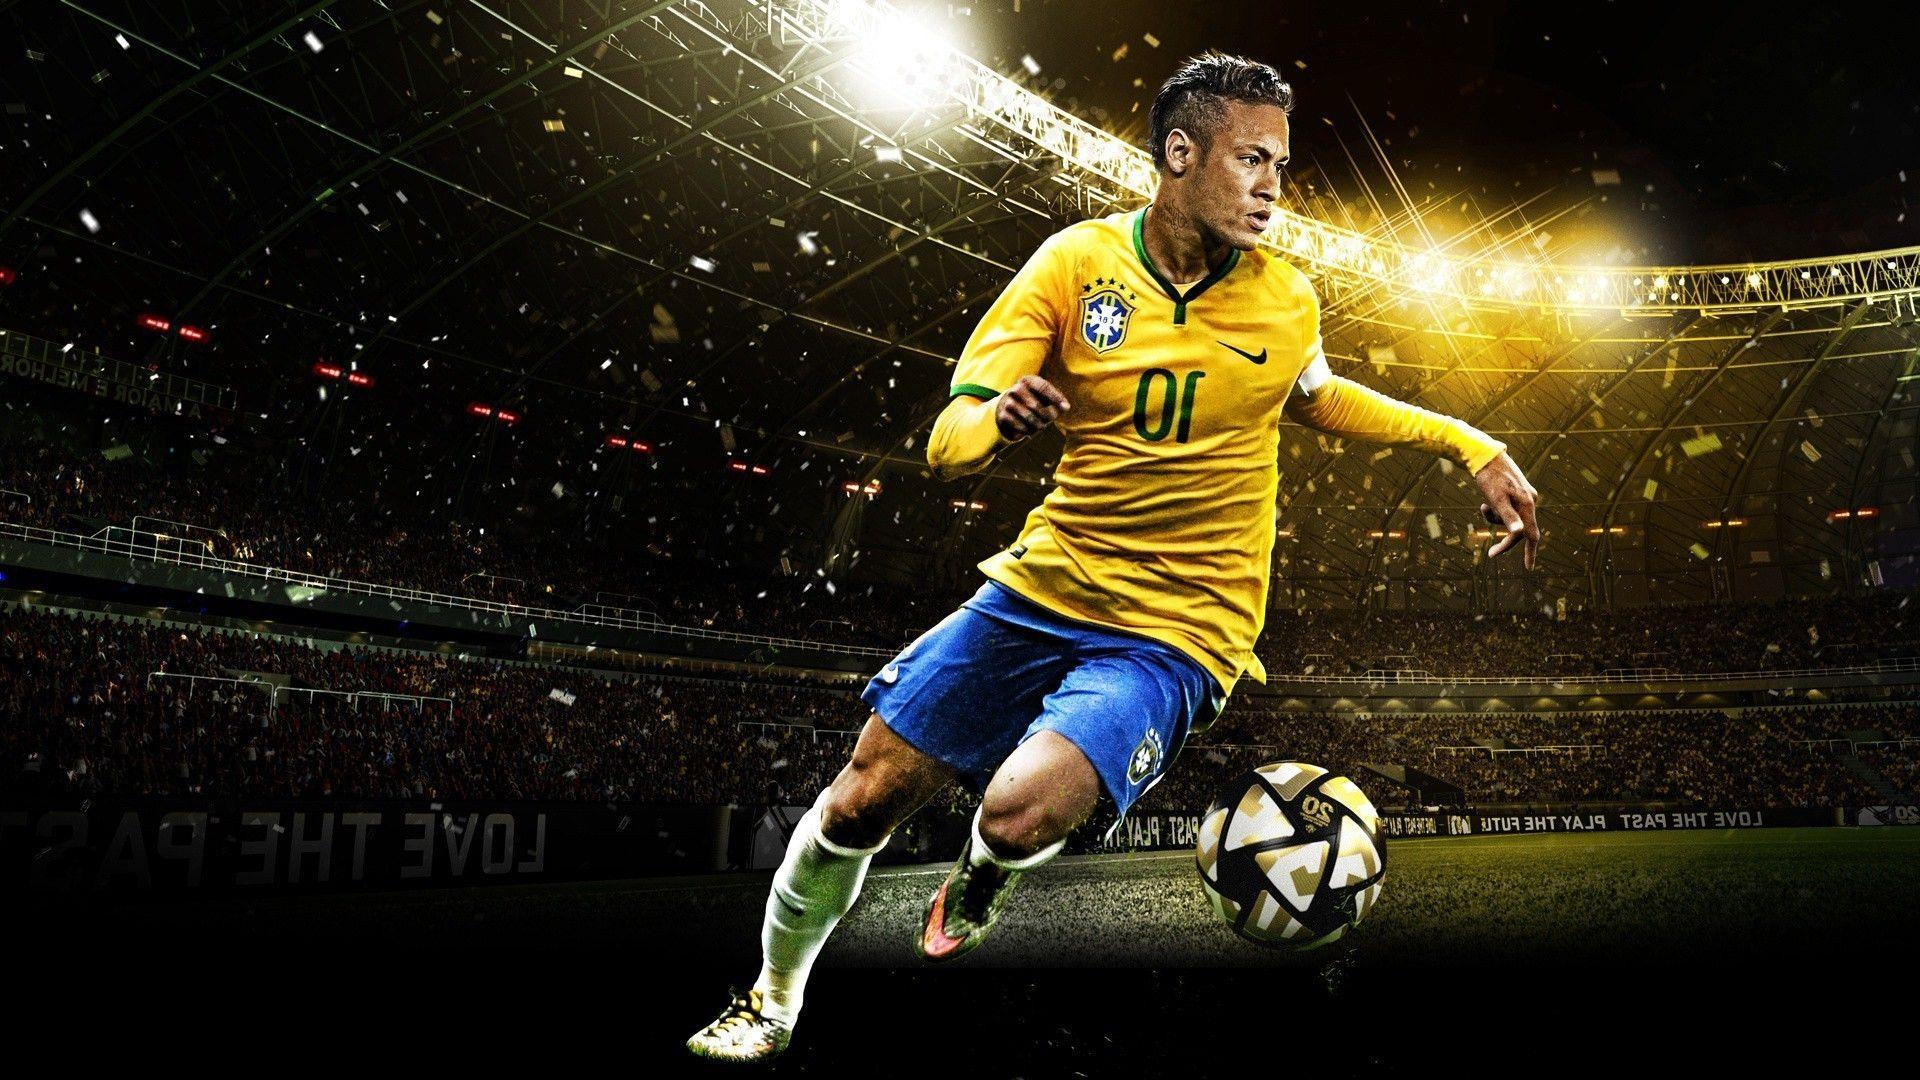 Neymar Wallpaper 2017 HD ·①